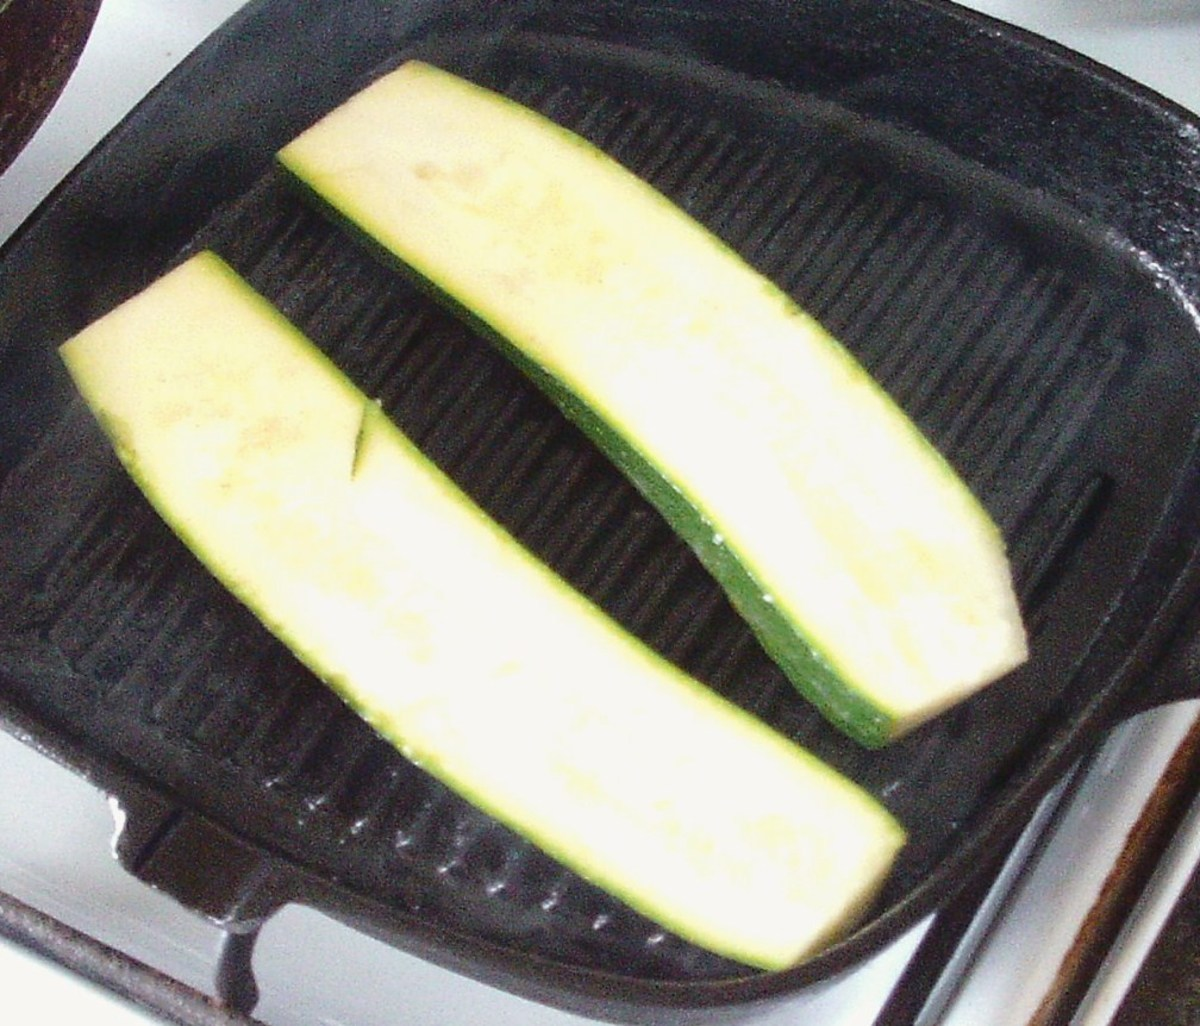 Starting to griddle zucchini slices